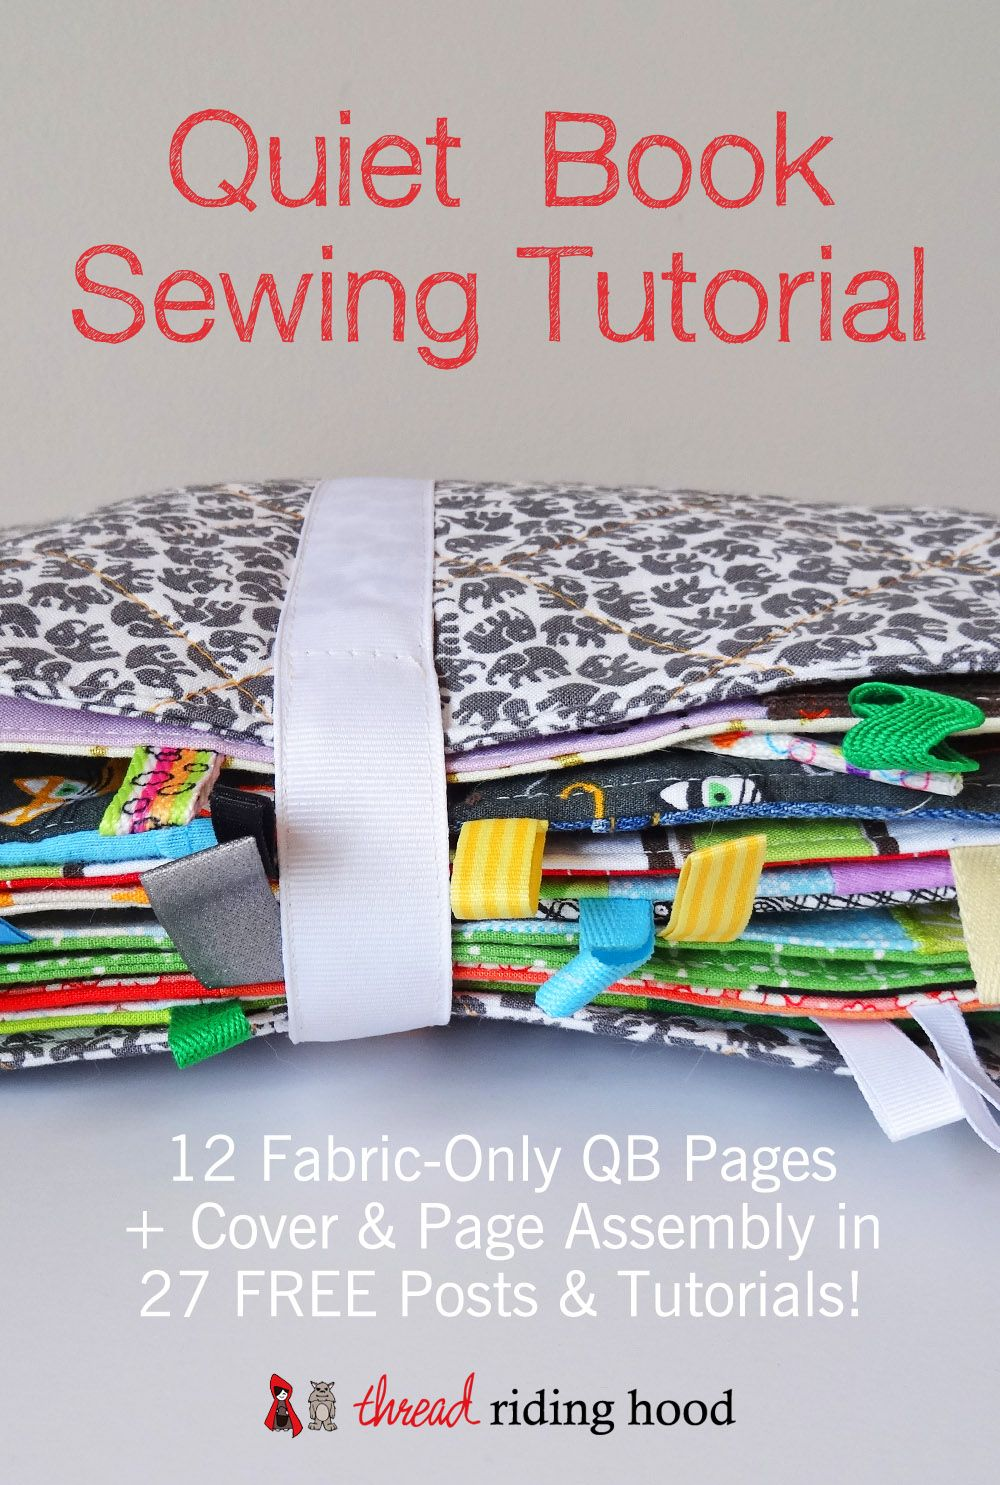 Book Cover Tutorial Xbox : Free quiet book sewing tutorials to sew your own